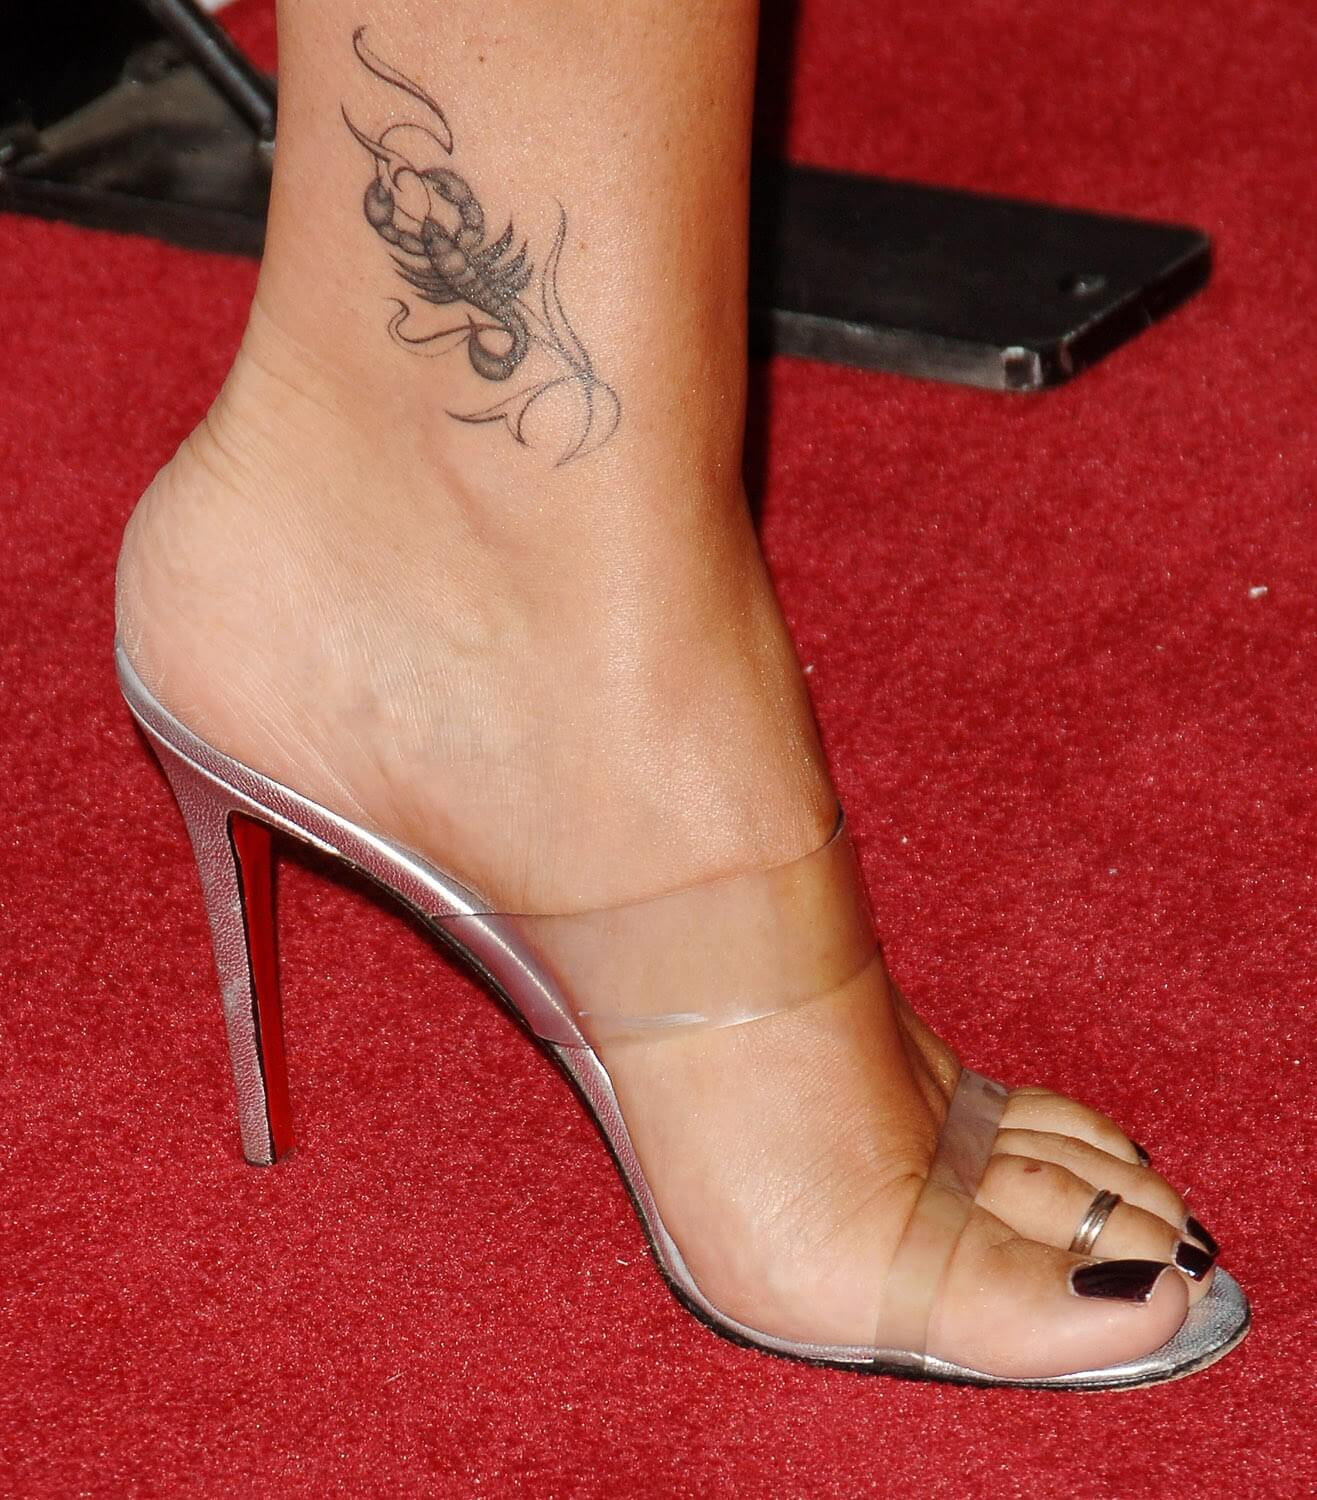 Quick Gallery With Tattoos On Ankle